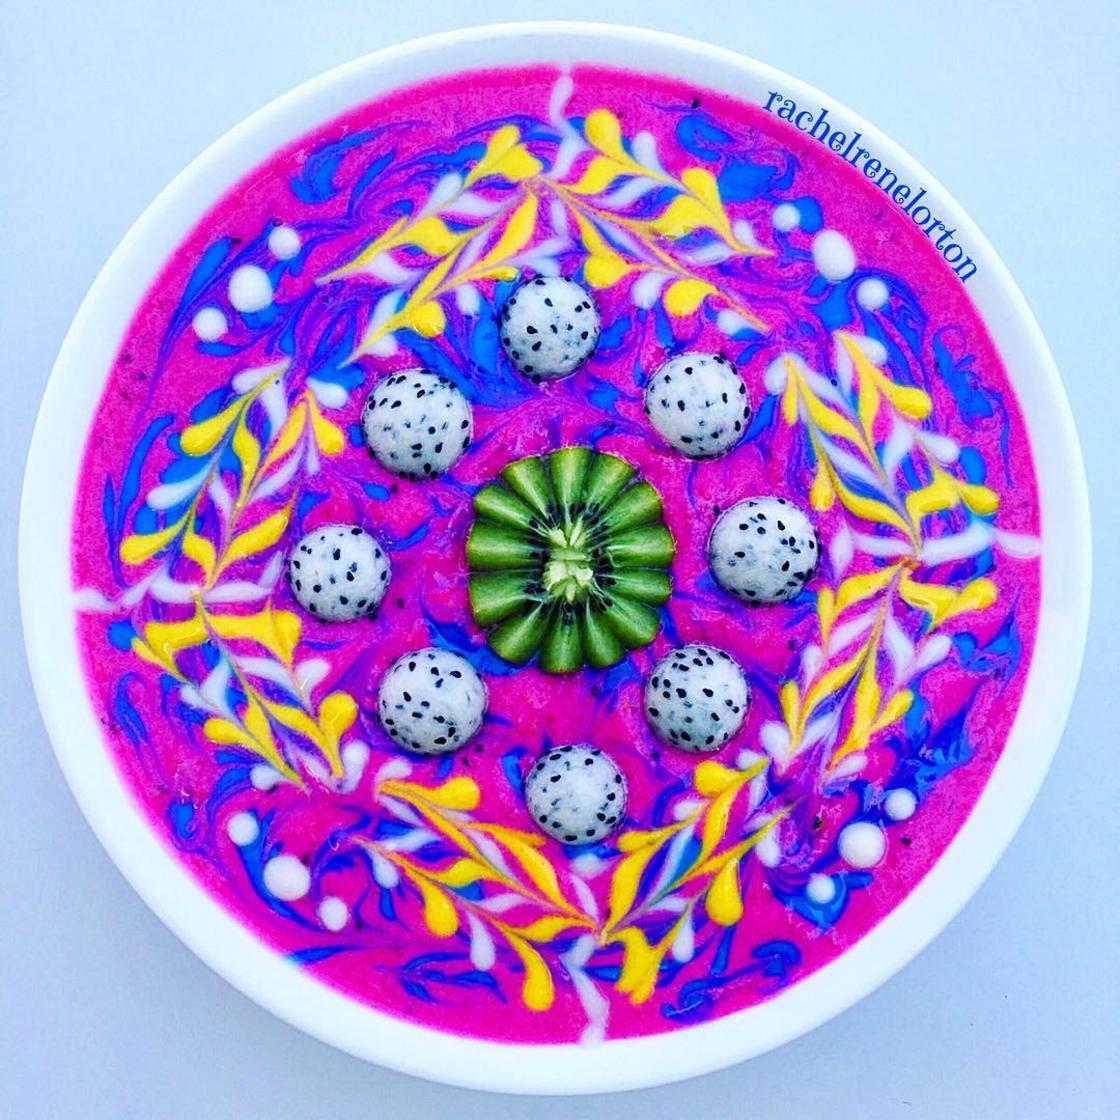 Psychedelic Smoothie – She imagines ultra-colorful vegan creations (24 pics)